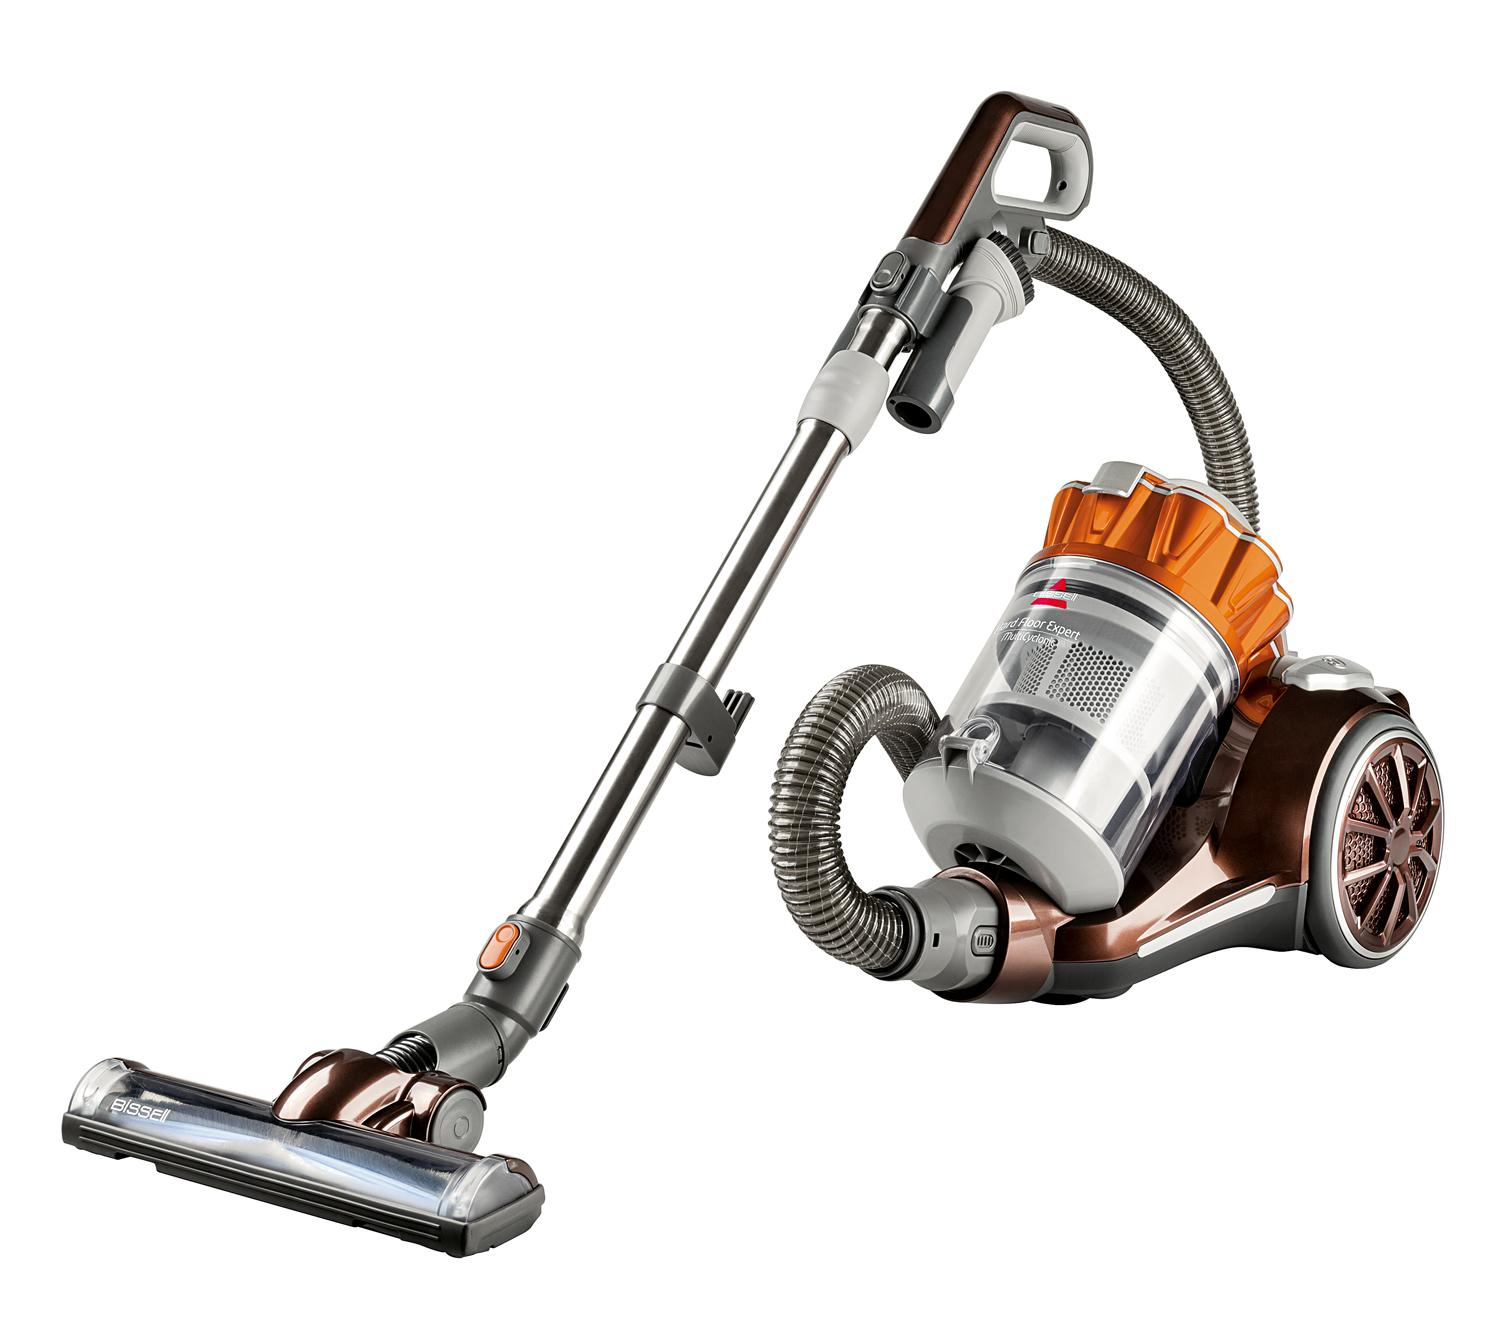 Amazoncom  Bissell Hard Floor Expert MultiCyclonic Bagless Canister Vacuum 1547